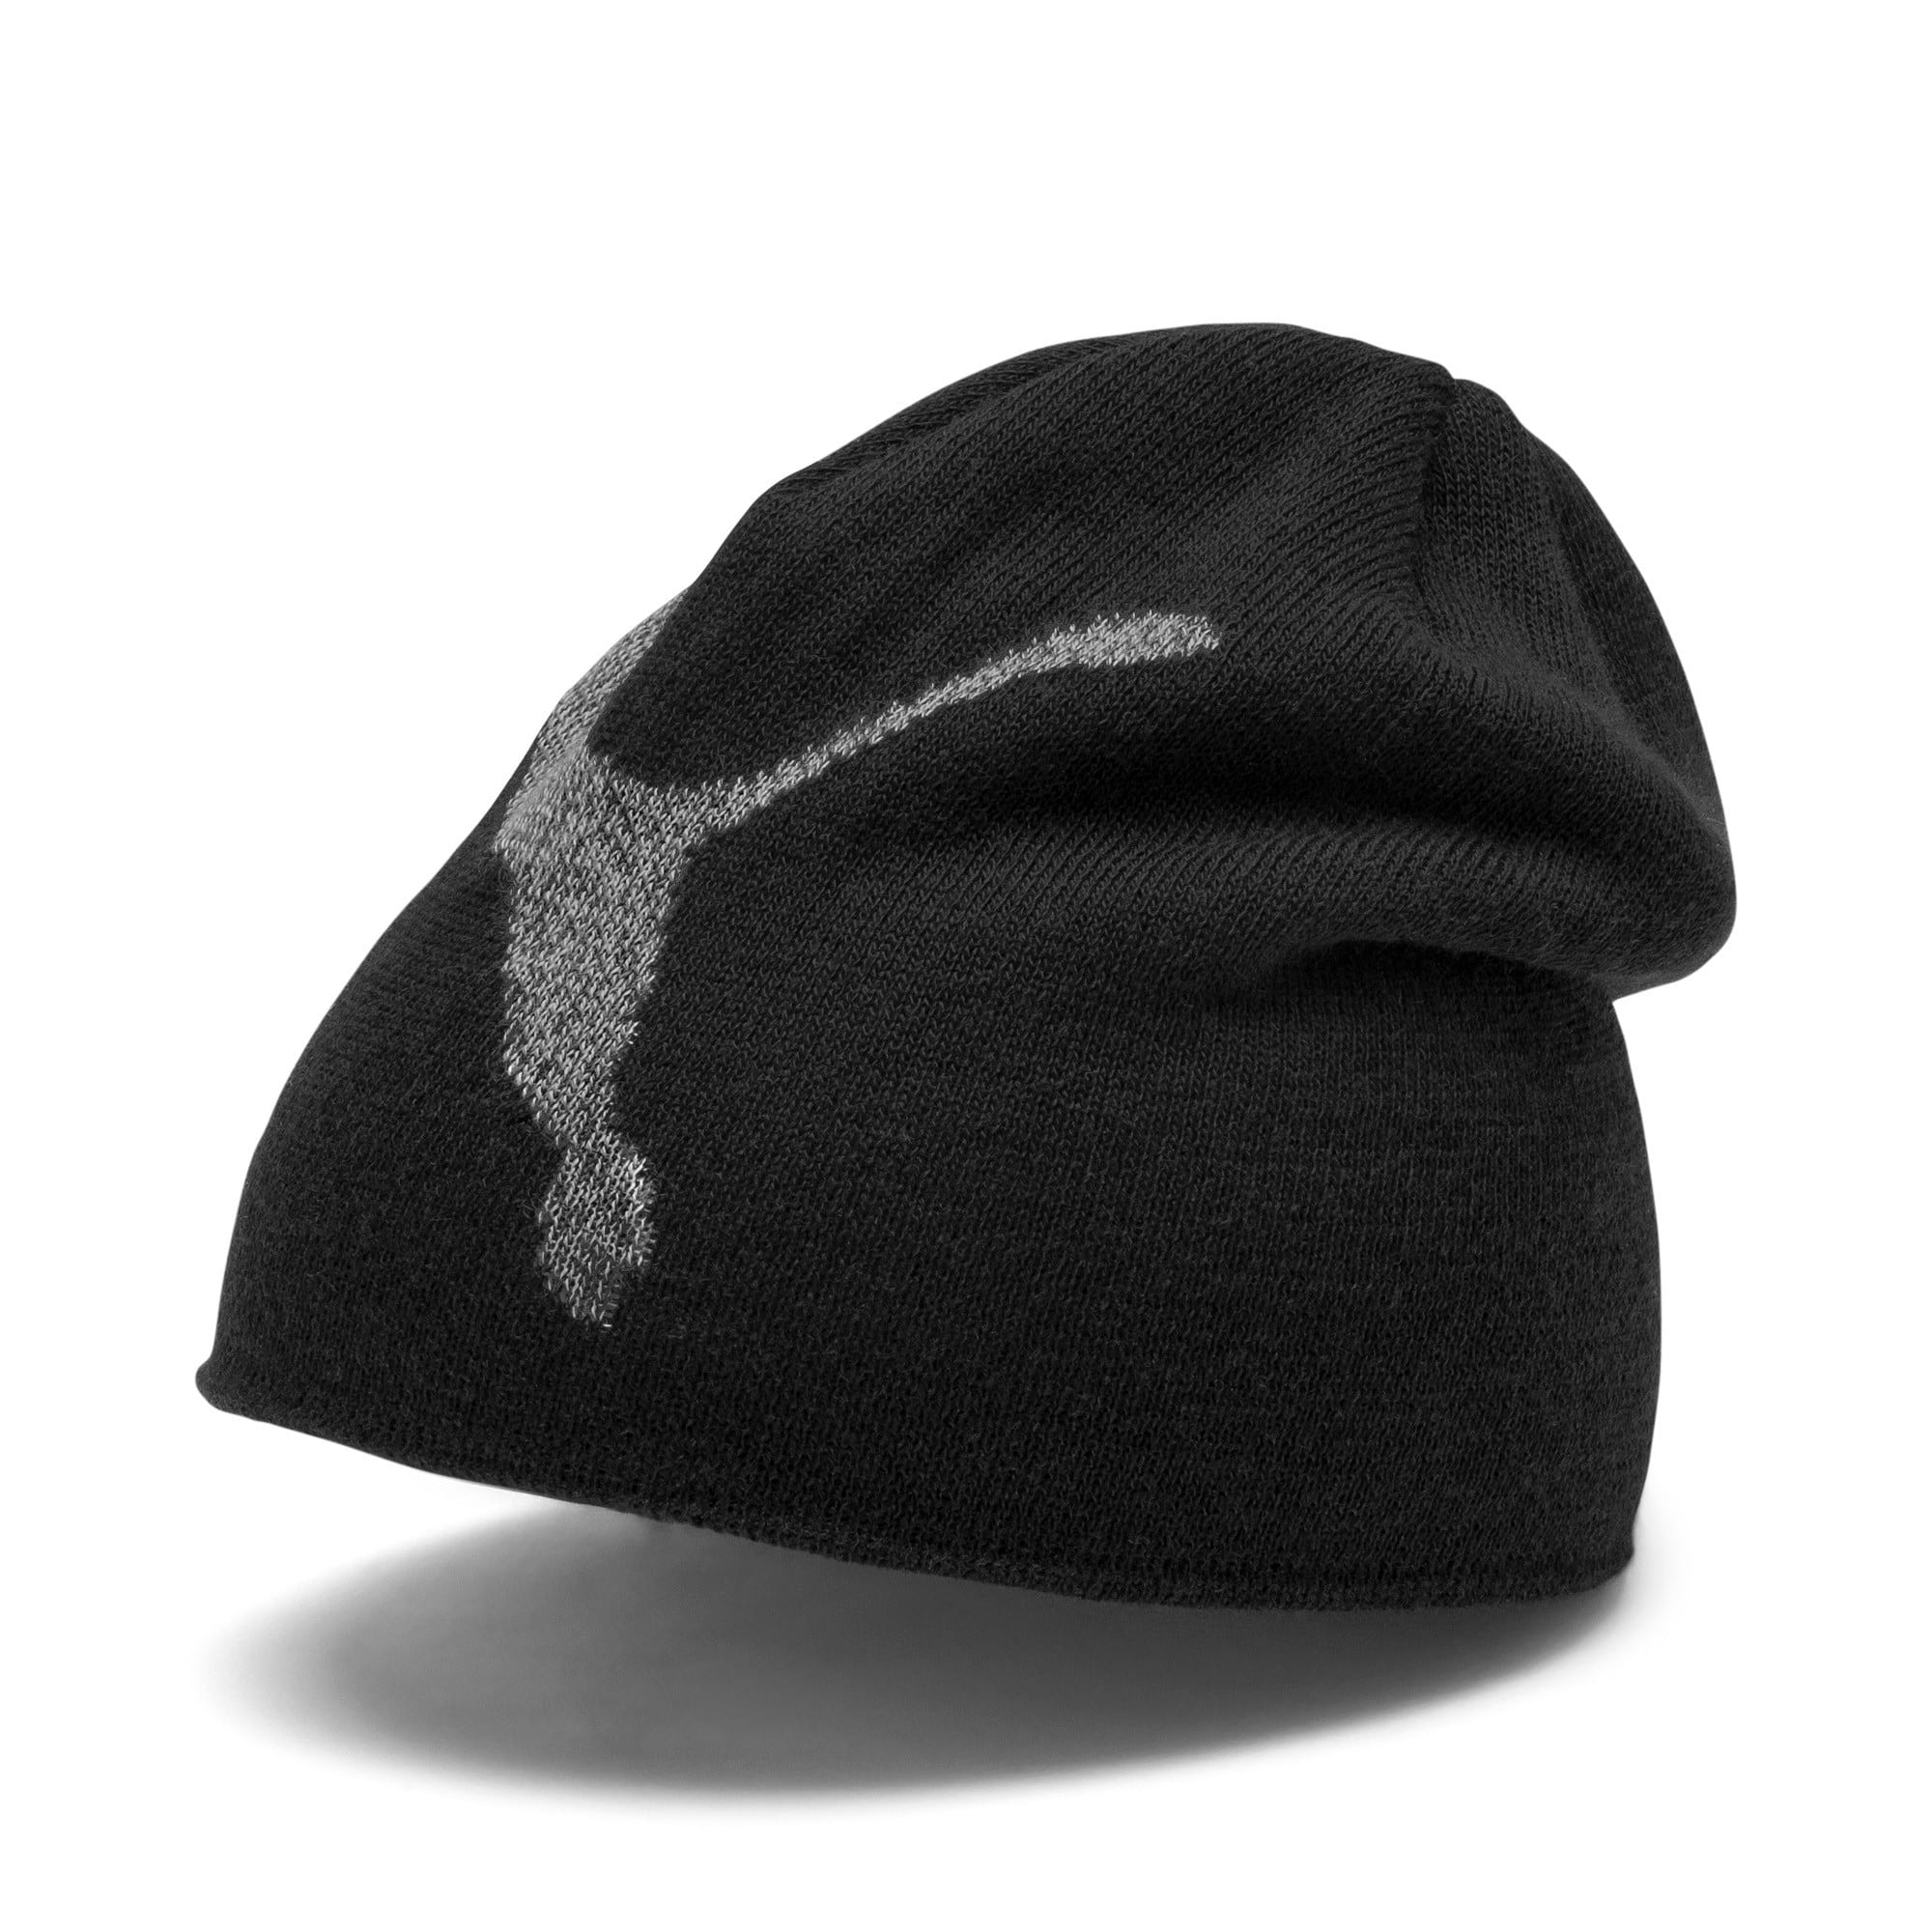 Thumbnail 1 of Essentials Logo Kids' Beanie, Puma Black-Big Cat, medium-IND